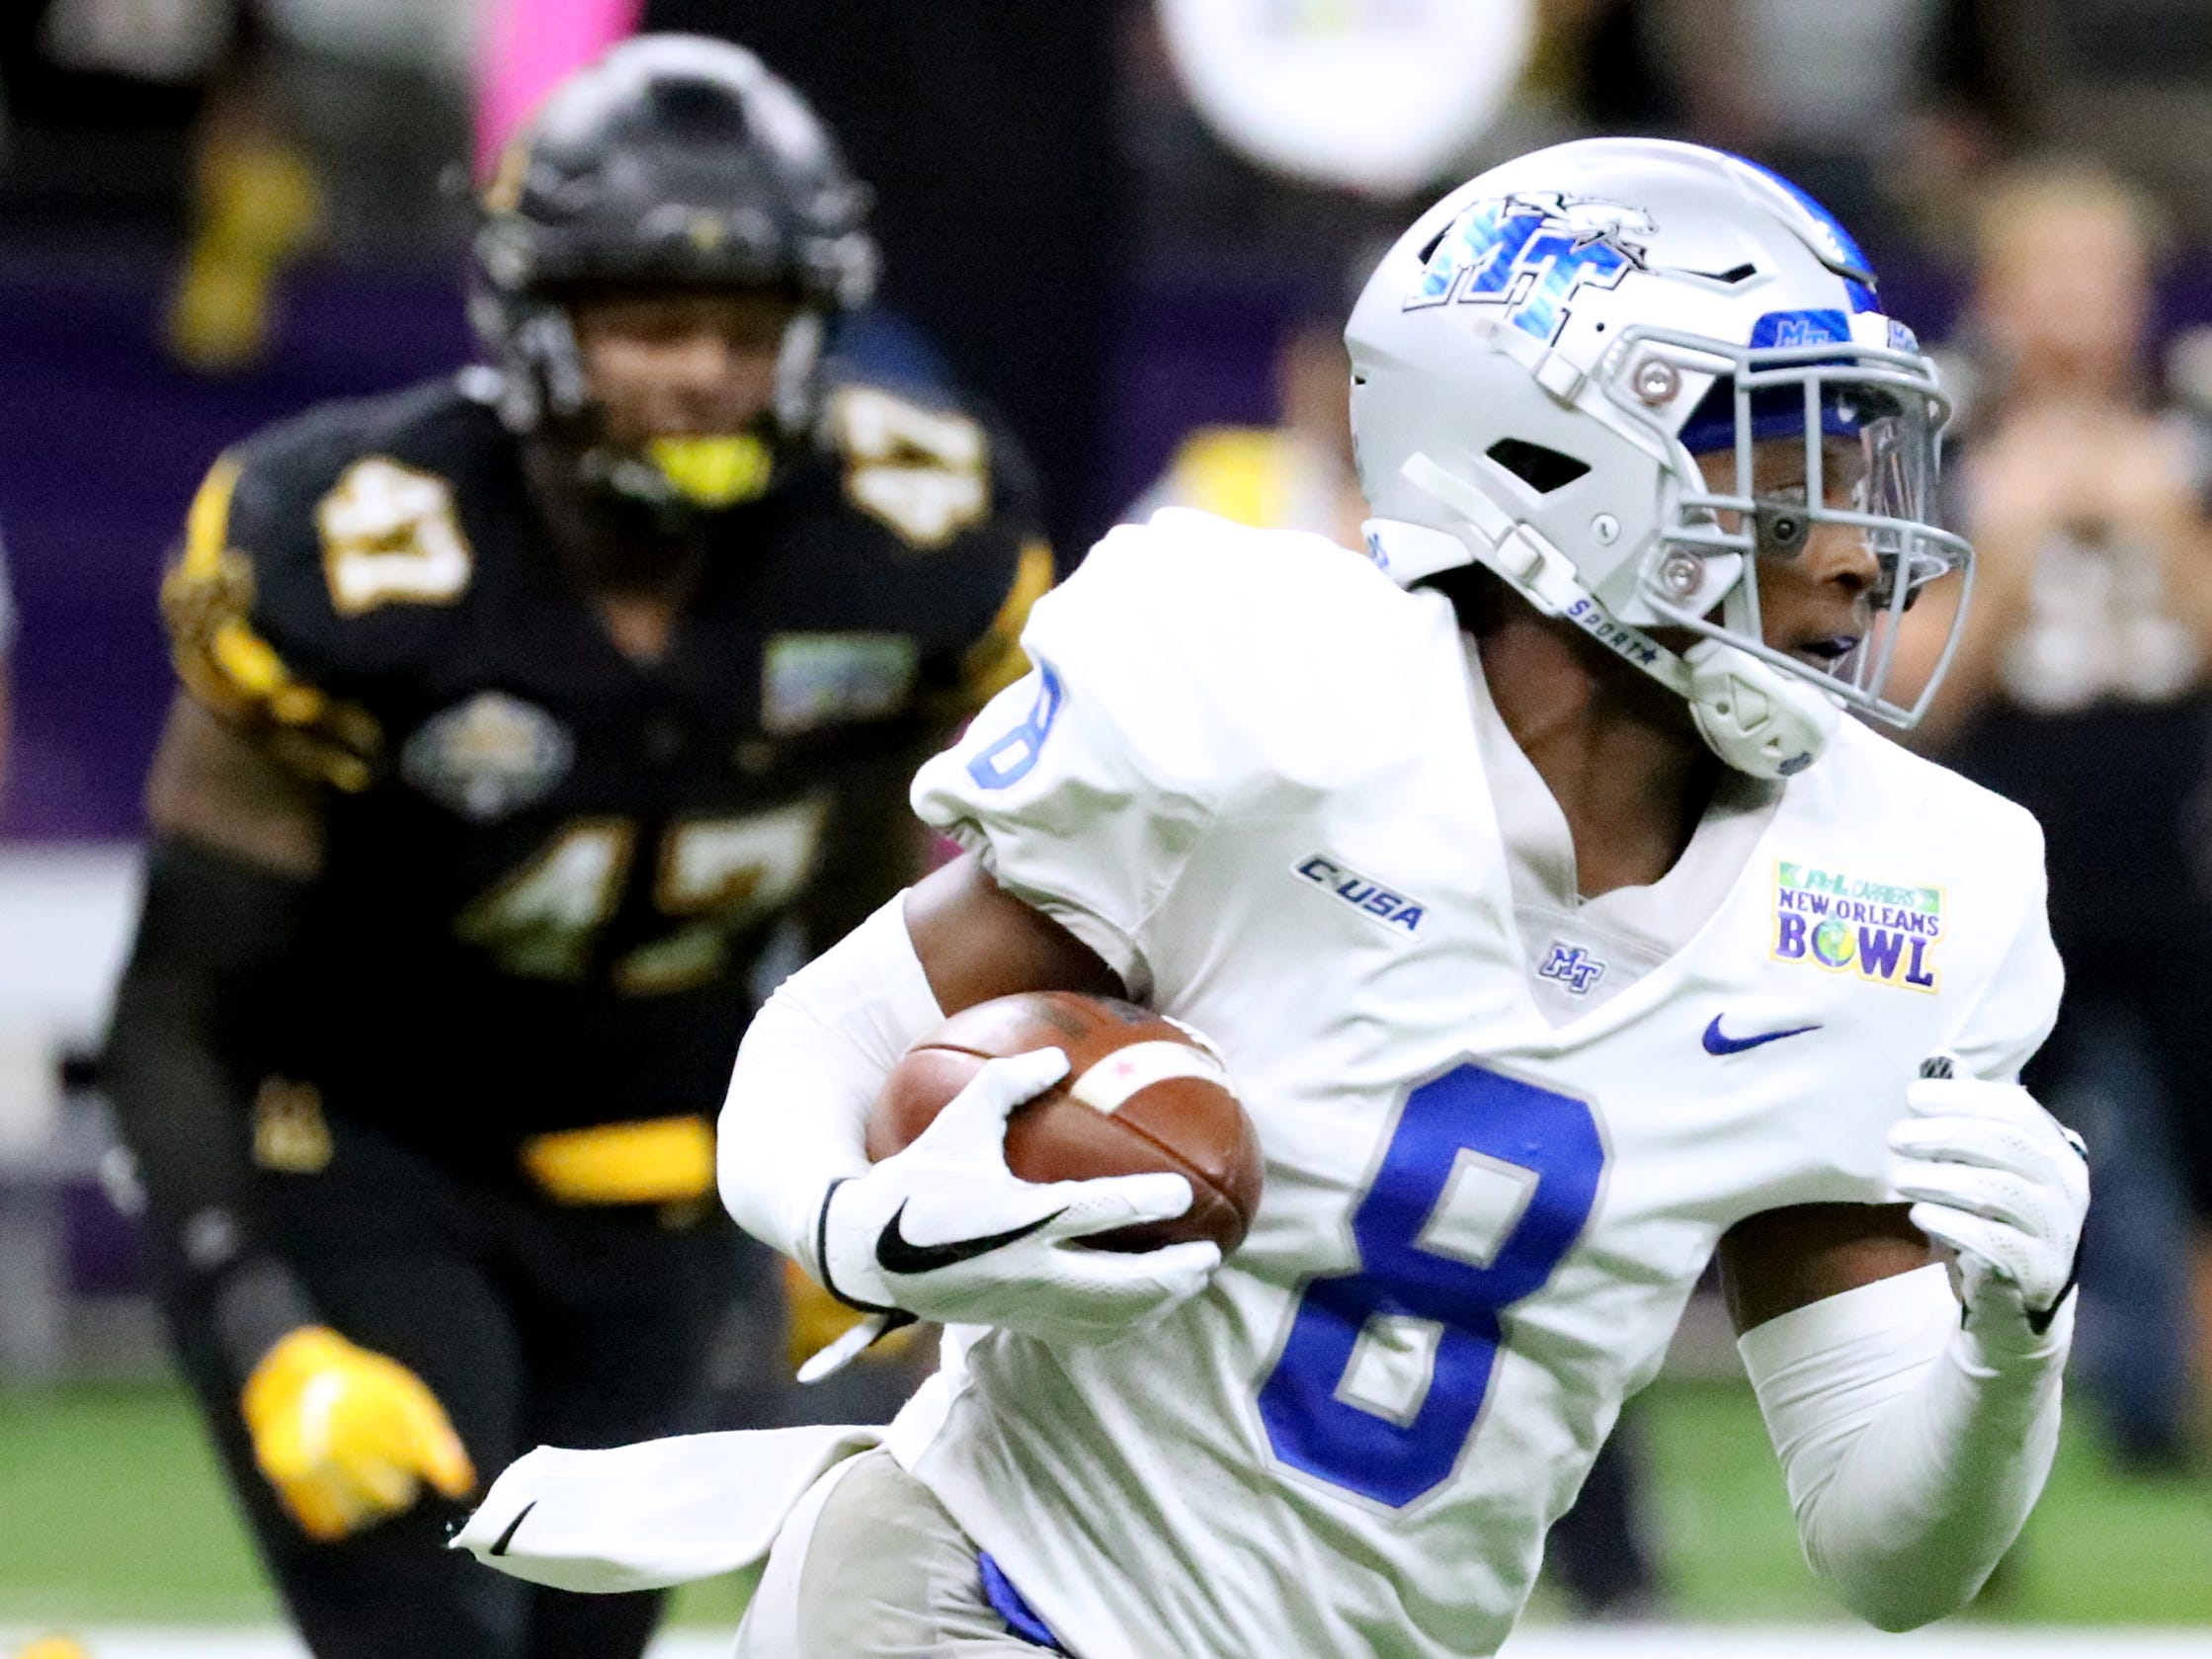 Middle Tennessee Blue Raiders wide receiver Ty Lee (8) runs the ball against Appalachian State Mountaineers on Saturday, Dec. 15, 2018, during the New Orleans Bowl.